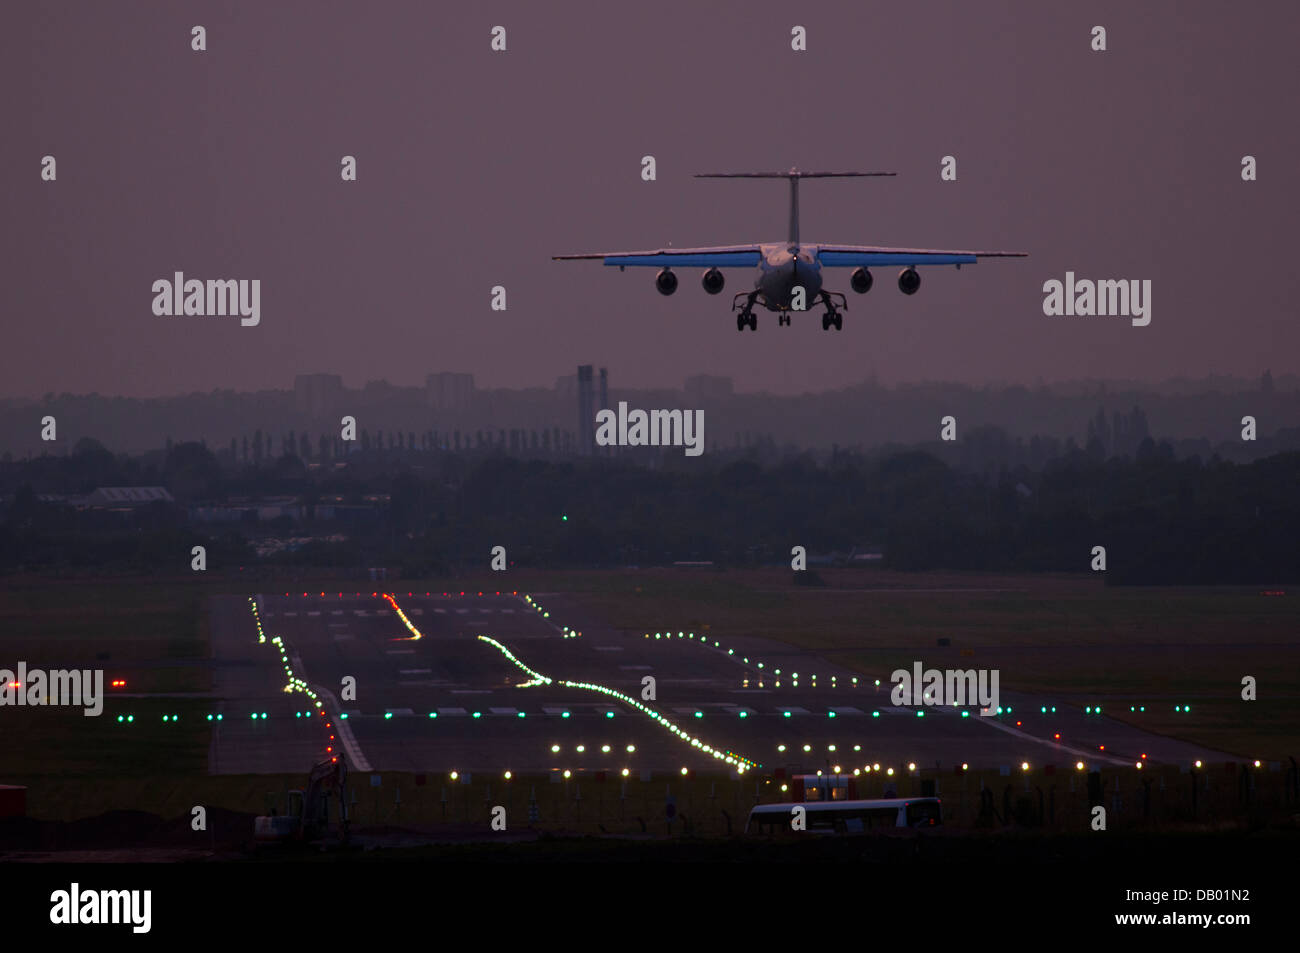 Aircraft Landing At Birmingham Airport With Runway Landing Lights Visible,  UK   Stock Image